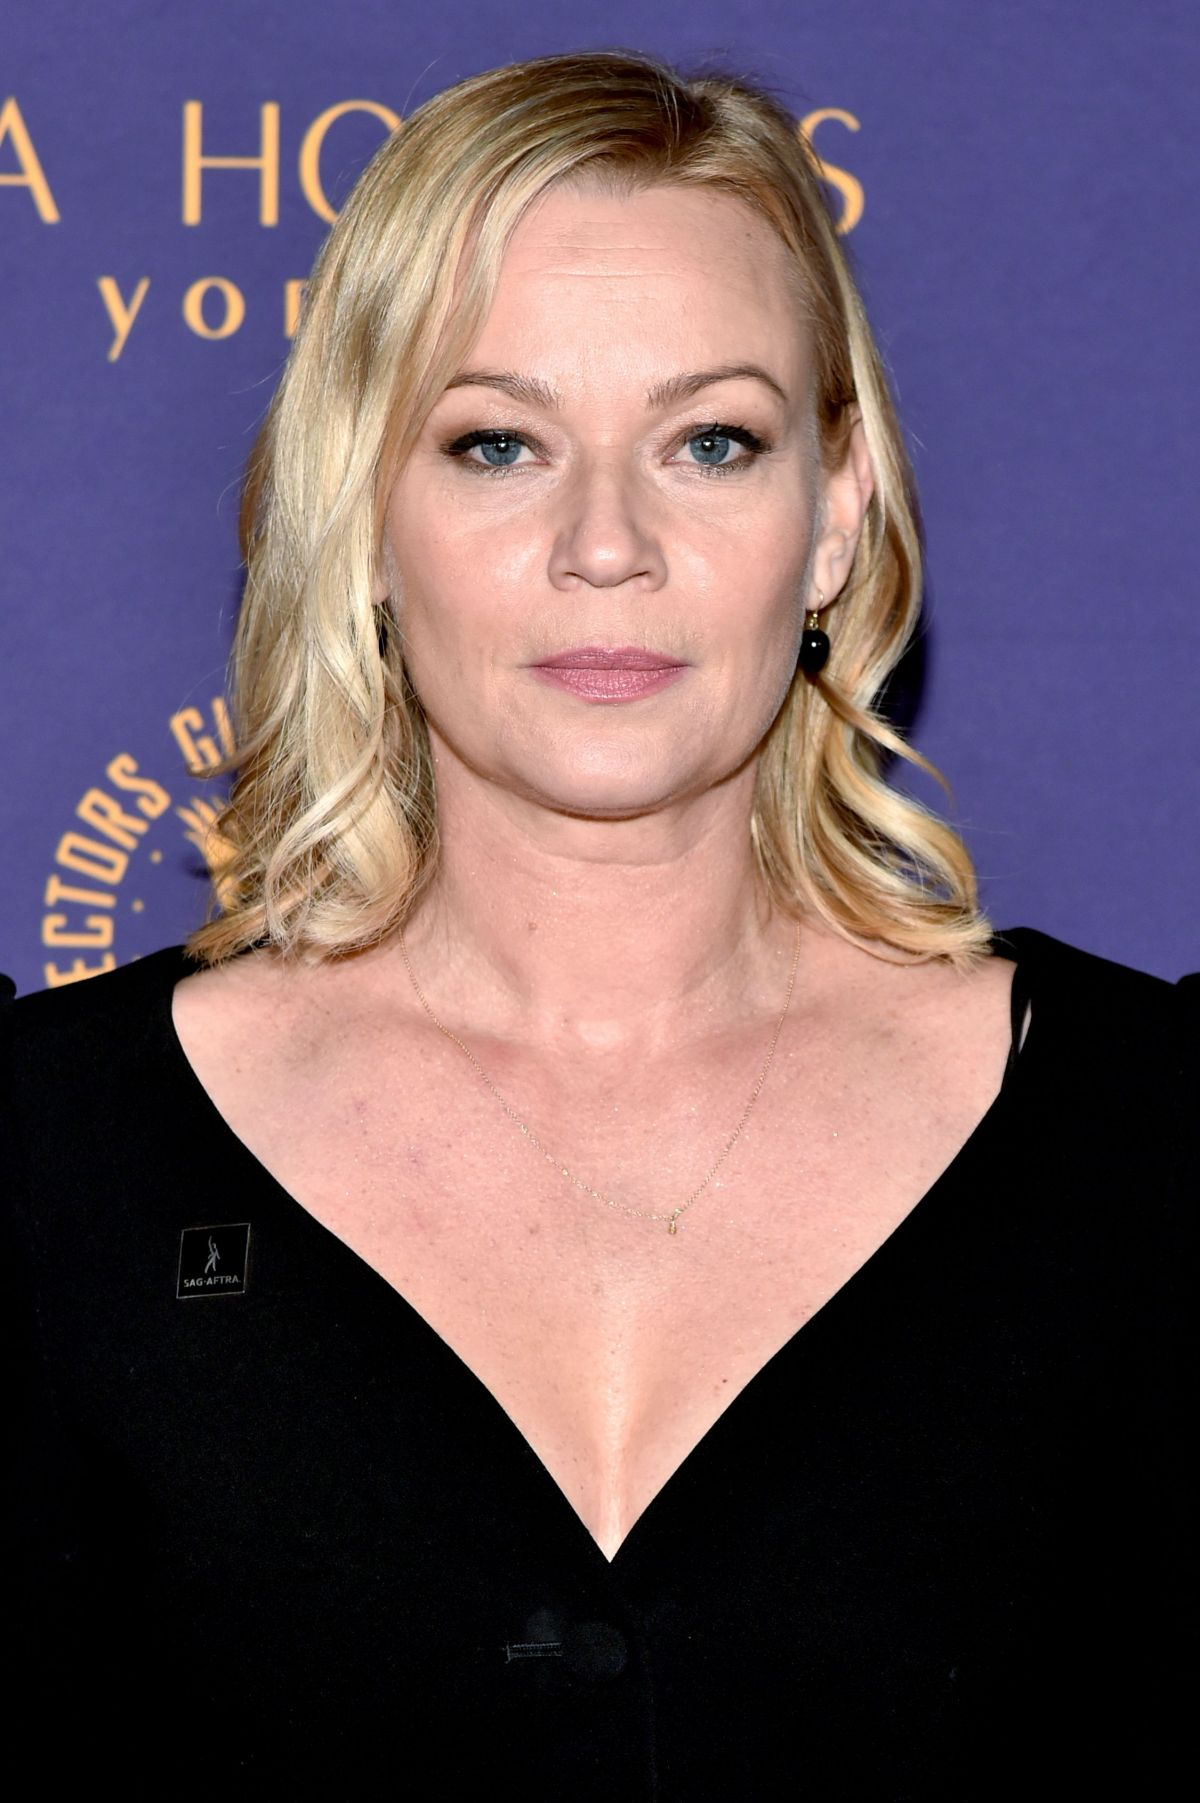 SAMANTHA MATHIS at Directors Guild of America Honors in